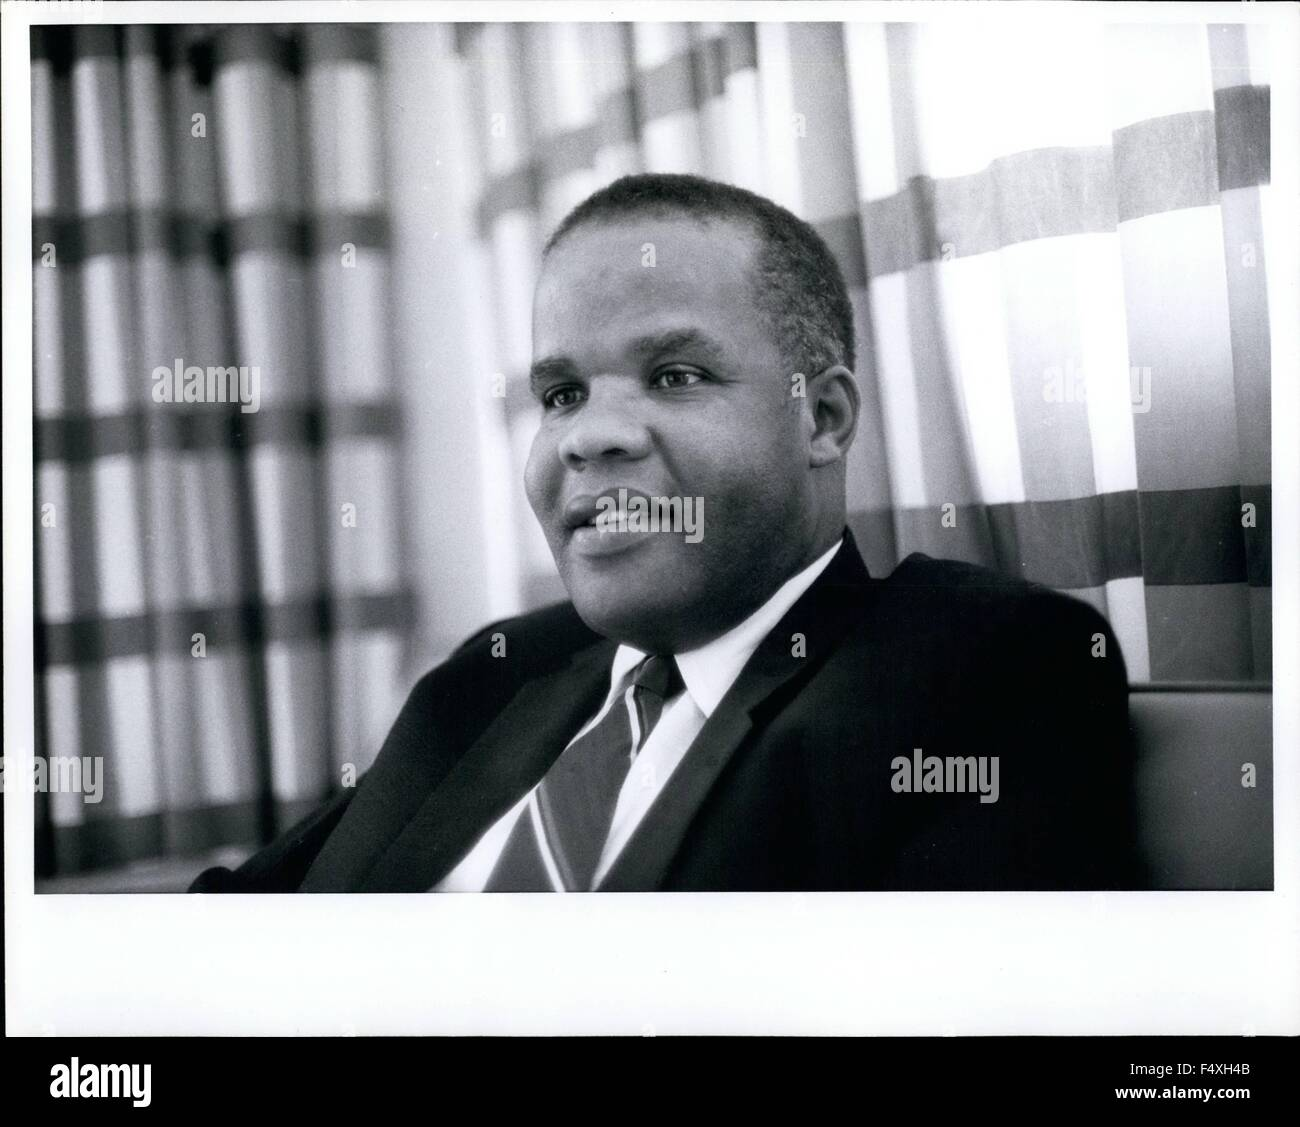 1968 - Monrovia, Liberia: A. Romeo Horton, Secretary of Commerce and Industry; President of Bank of Liberia. education: - Stock Image